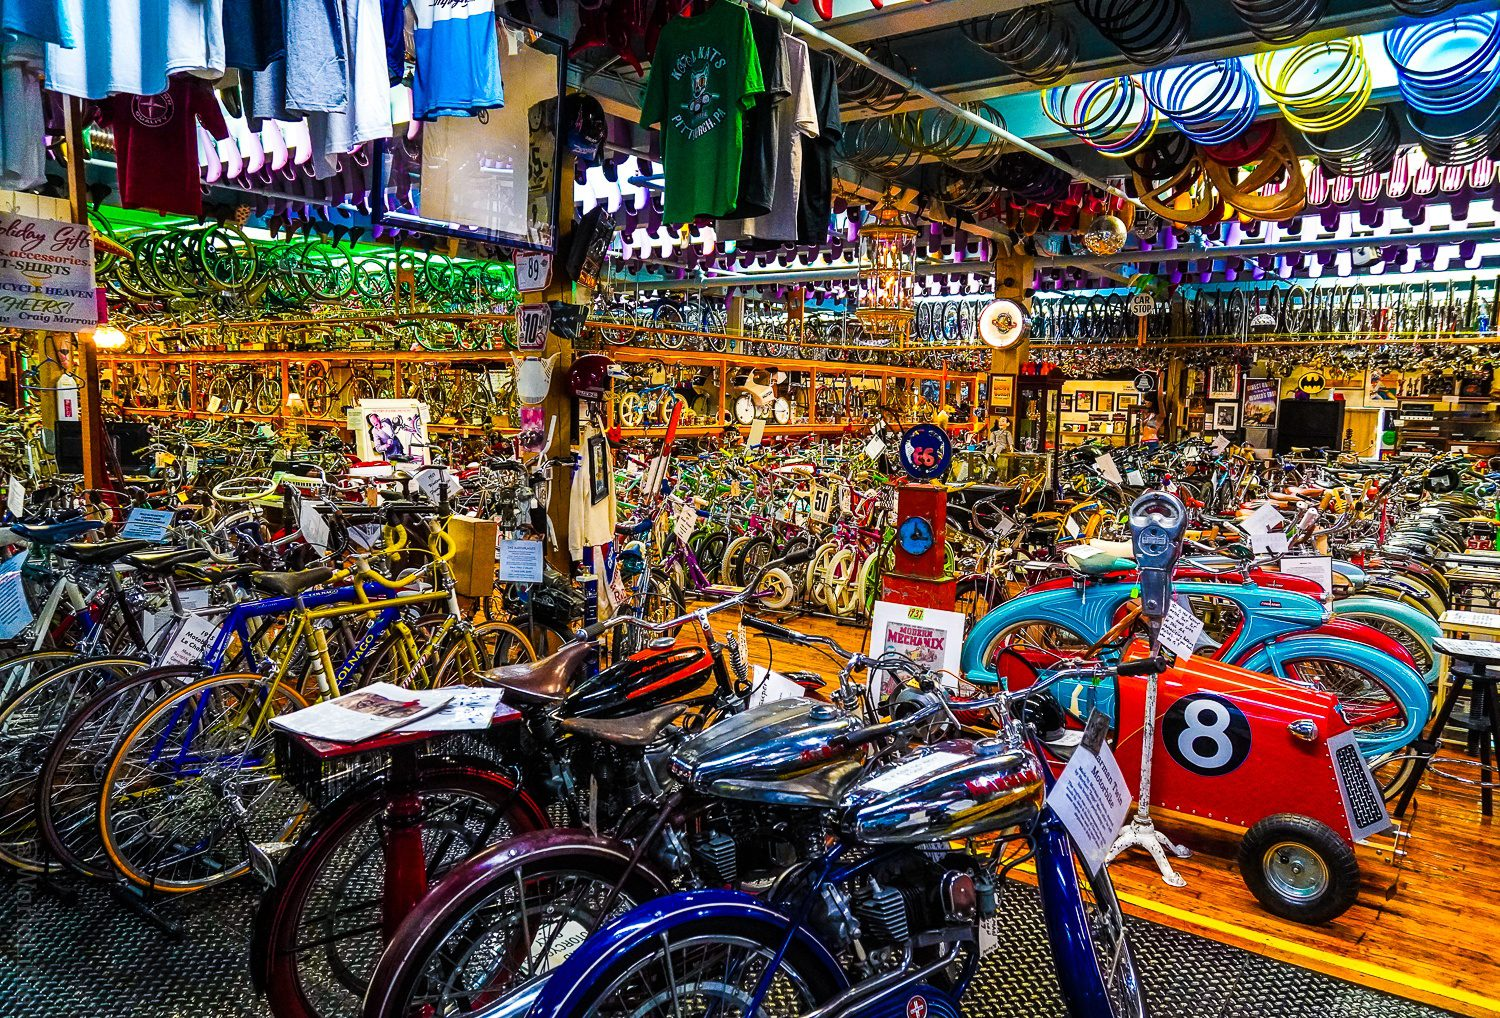 Where to start looking in this vast bicycle museum?